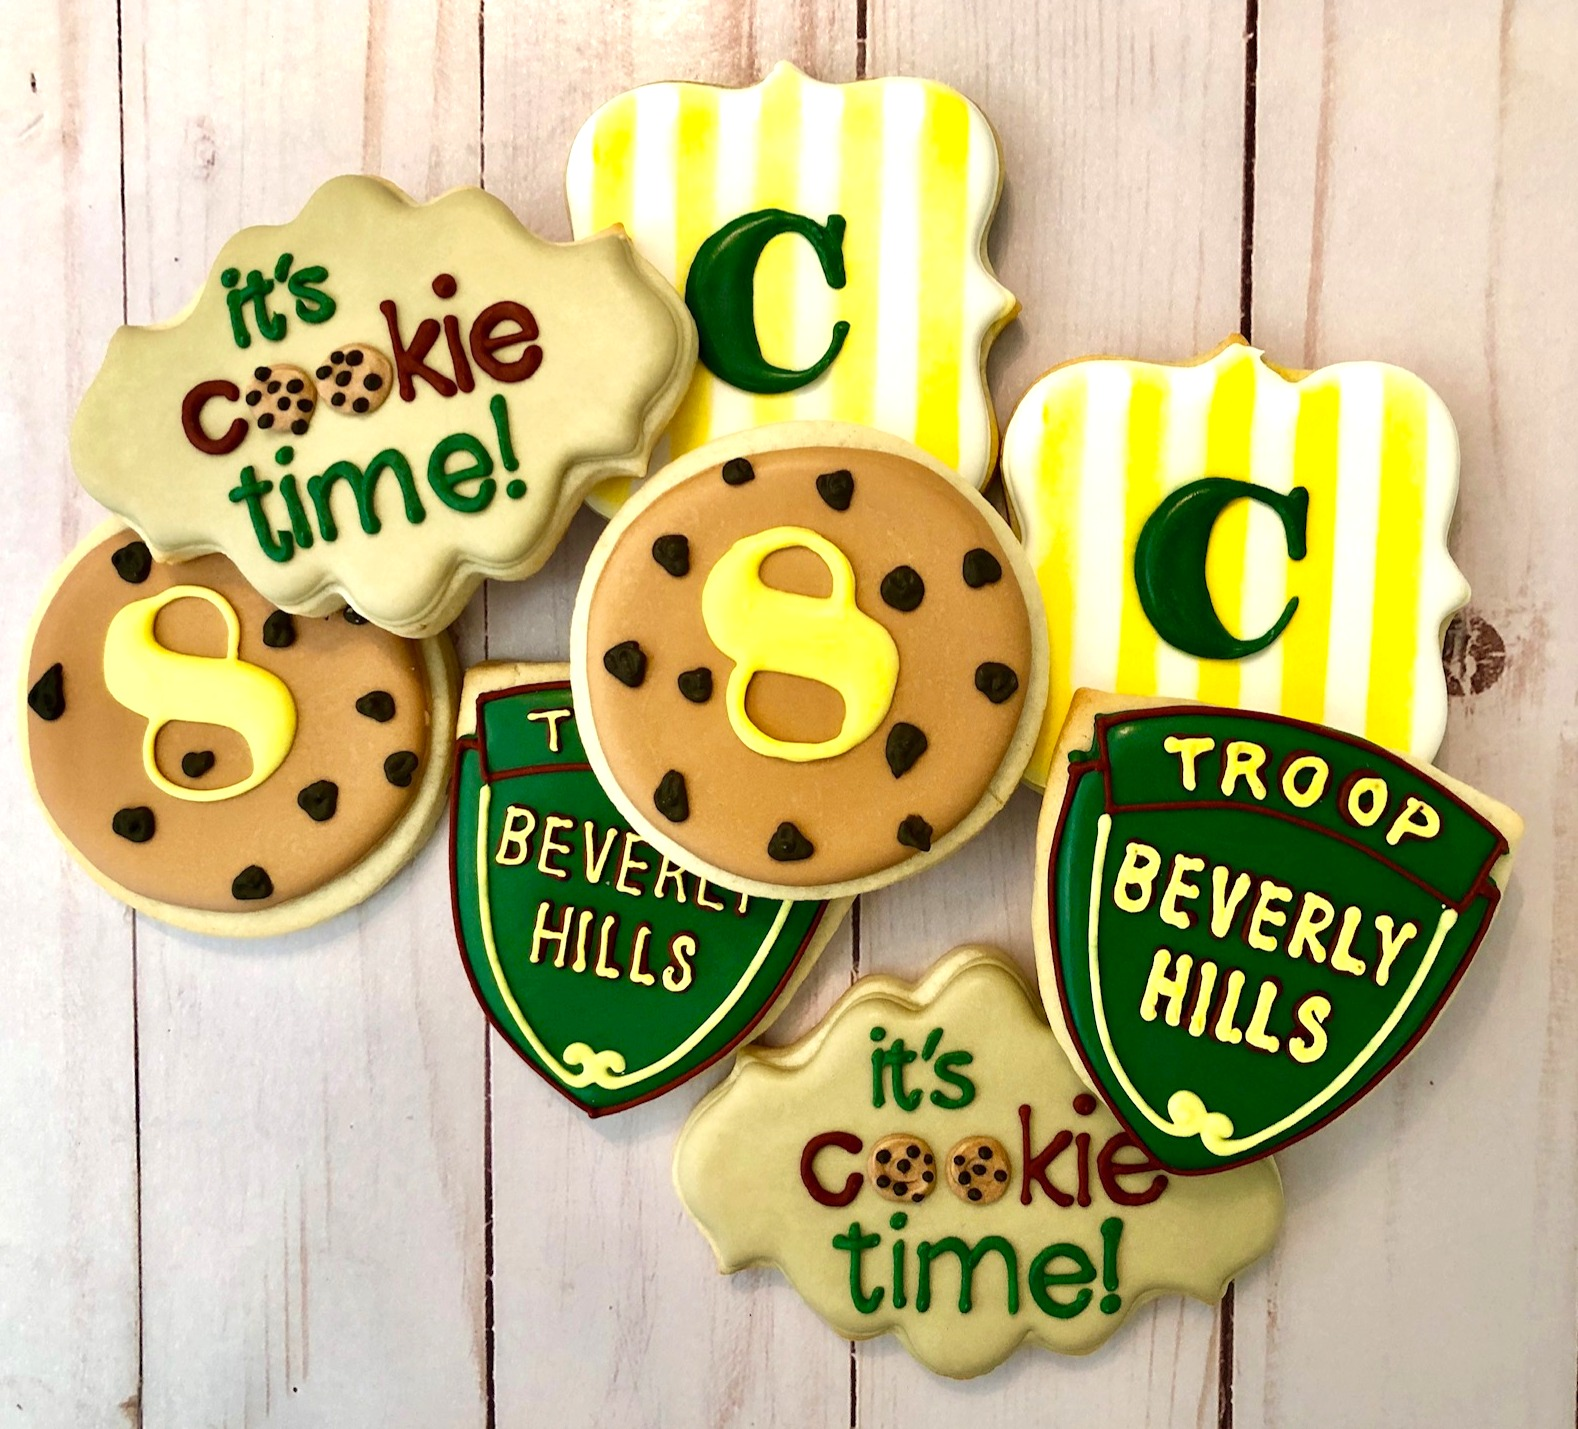 Troop Beverly Hills Cookies